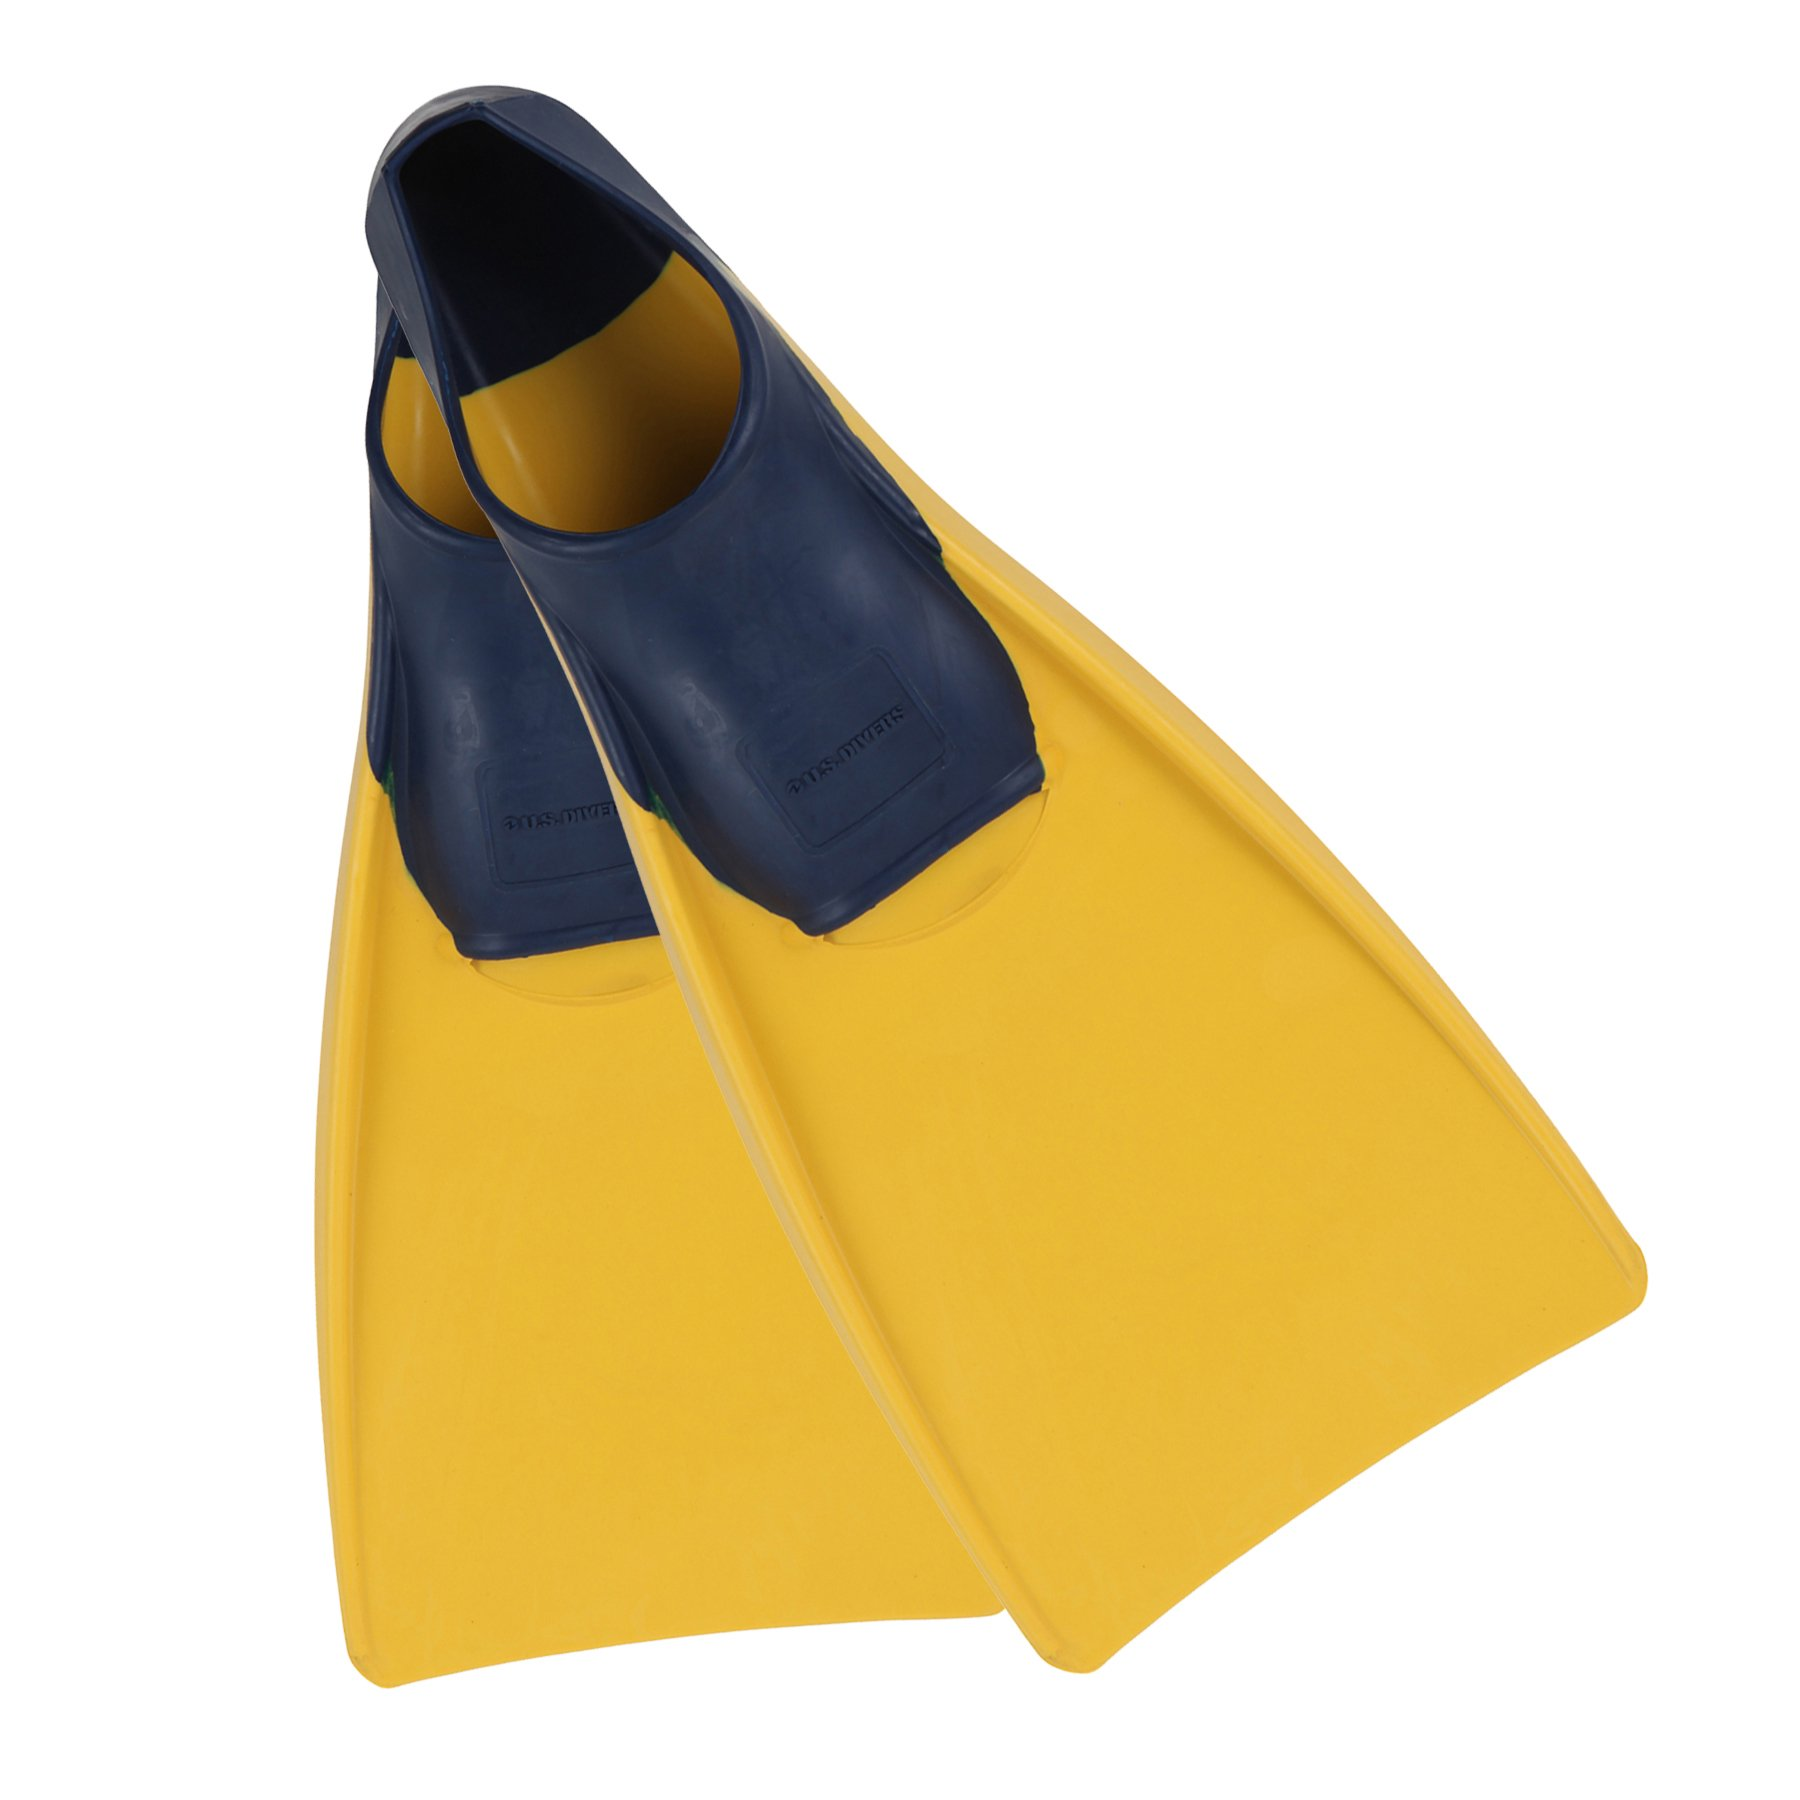 U.S. Divers Sea Lion Fin Yellow/Blue, Small 5-7 by U.S. Divers